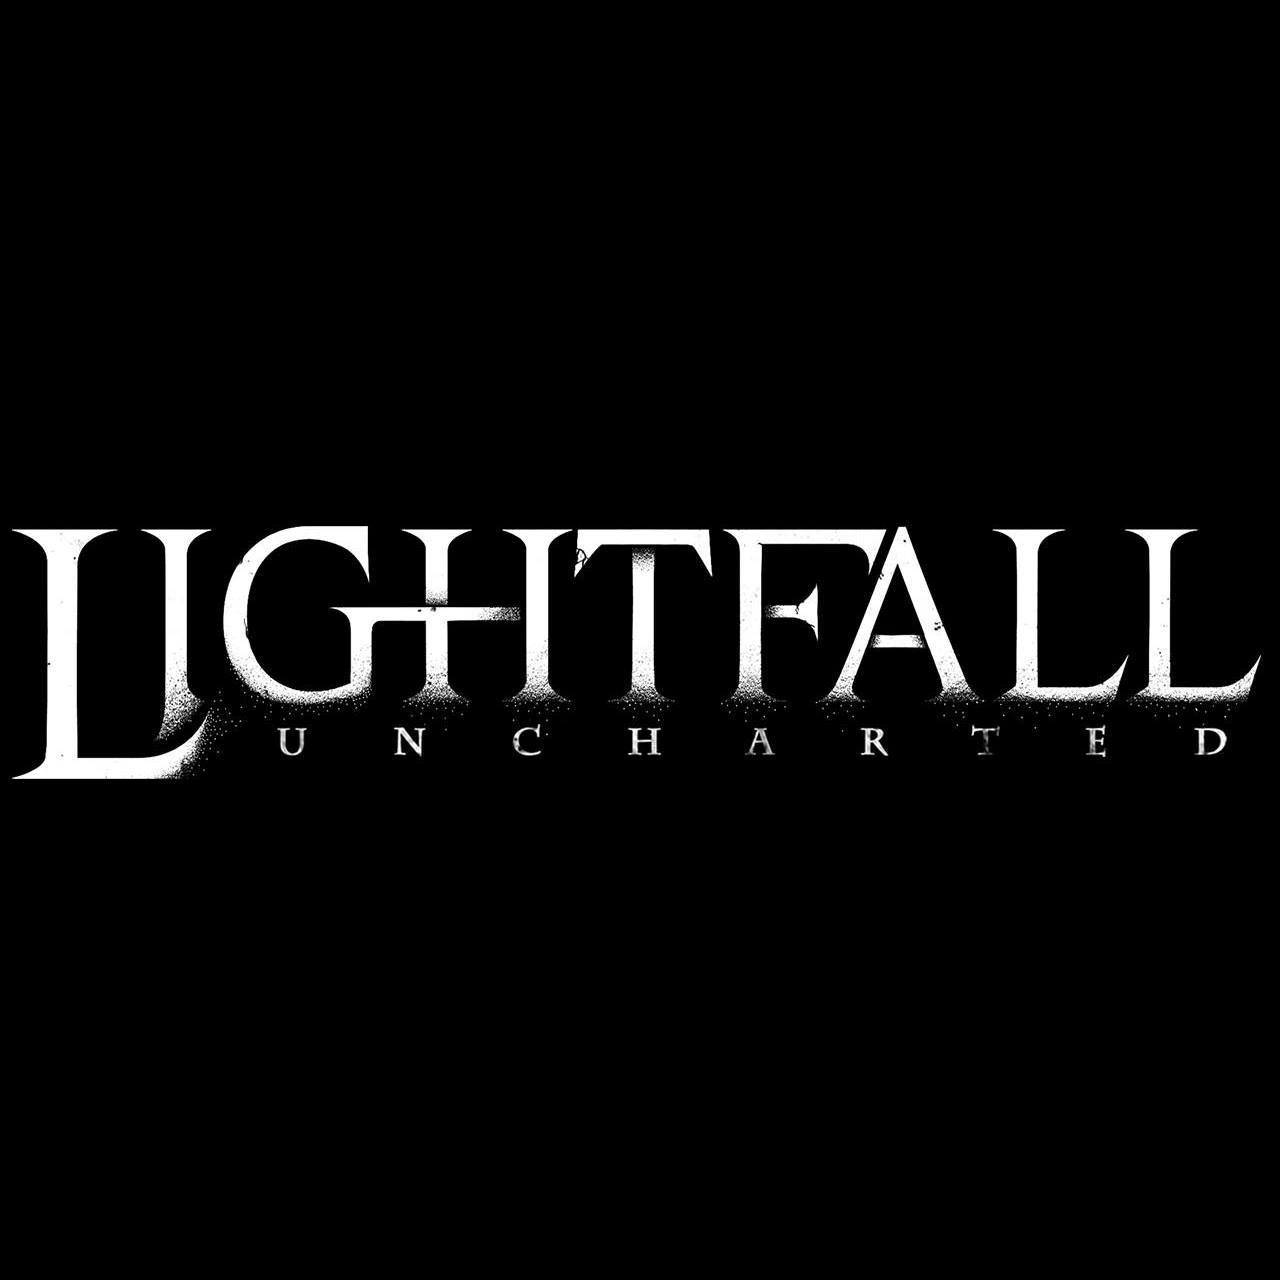 Lightfall - Misery [single] (2017)